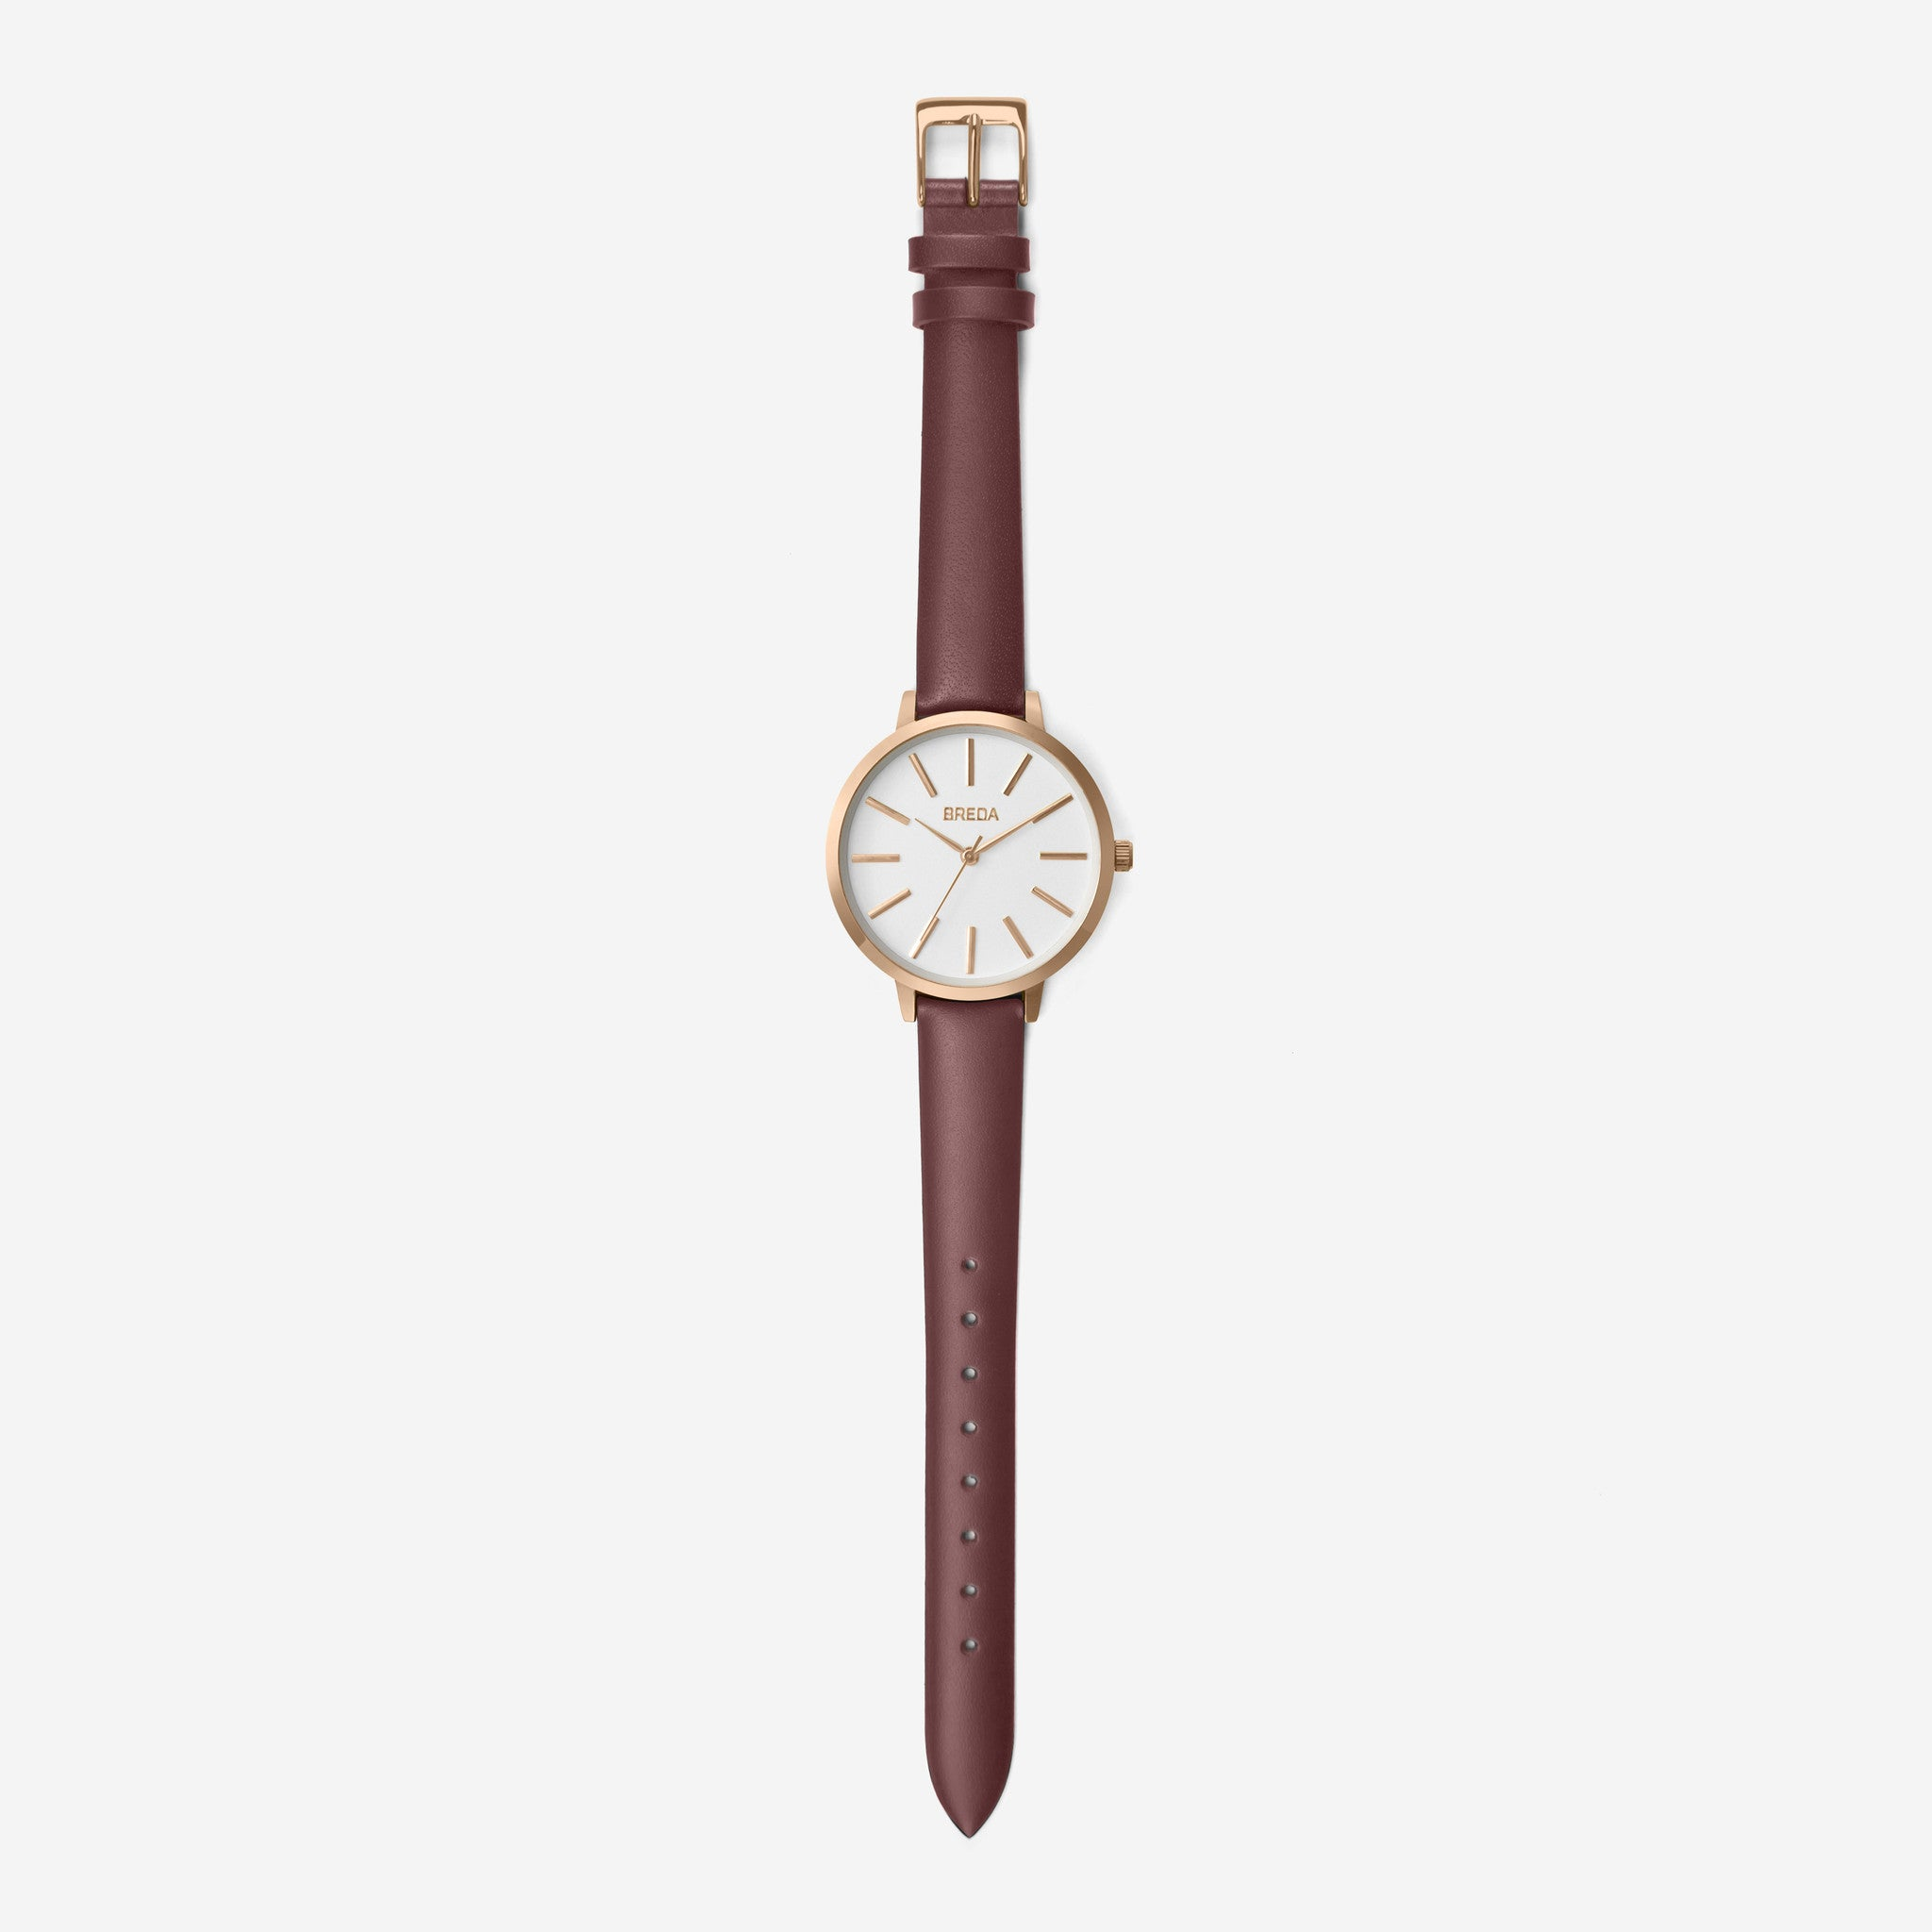 //cdn.shopify.com/s/files/1/0879/6650/products/breda-joule-1722d-rosegold-maroon-watch-long_1024x1024.jpg?v=1490812515